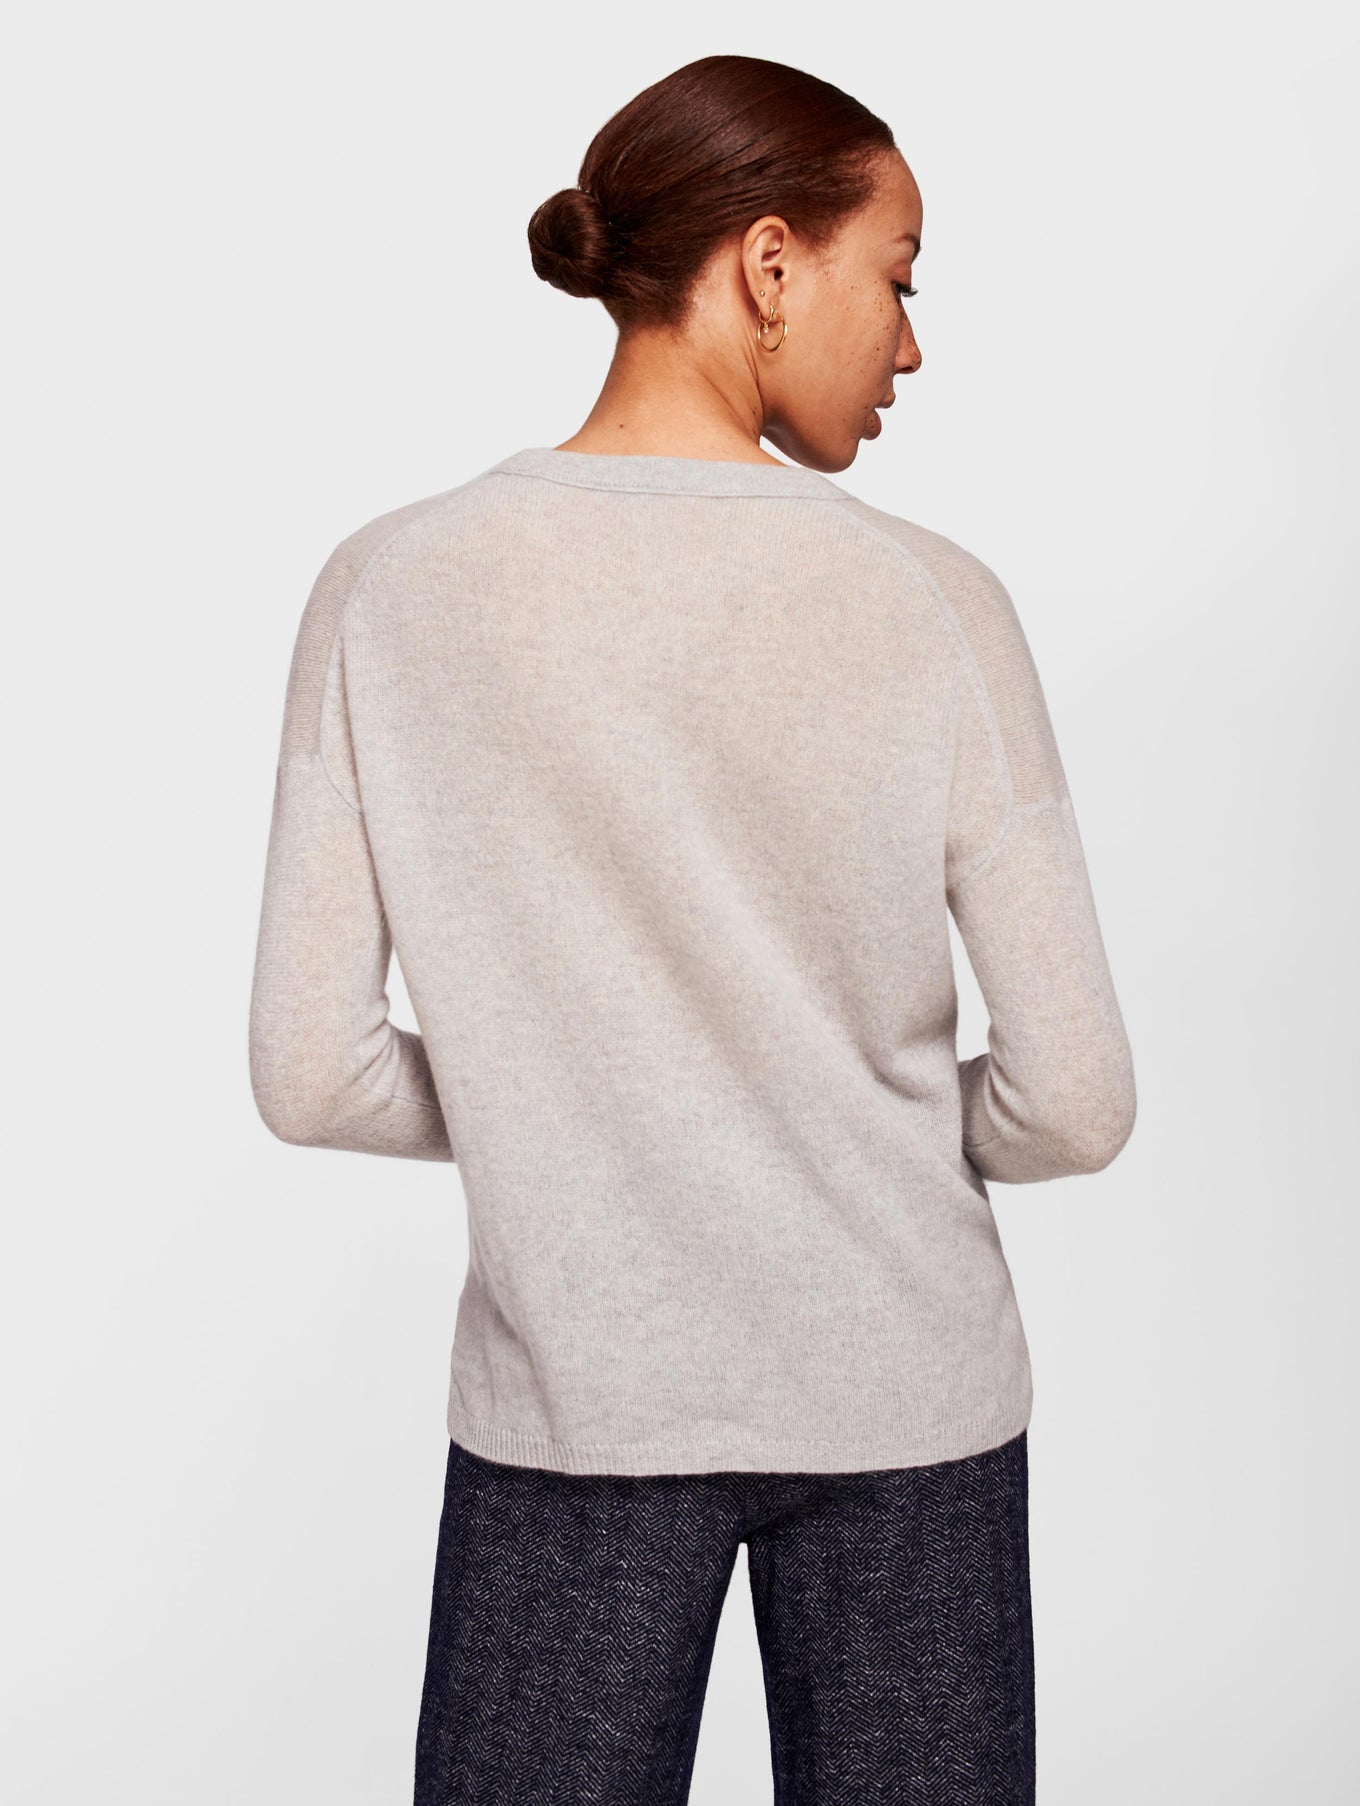 Cashmere Step Hem Crewneck - Ash Heather - Image 3